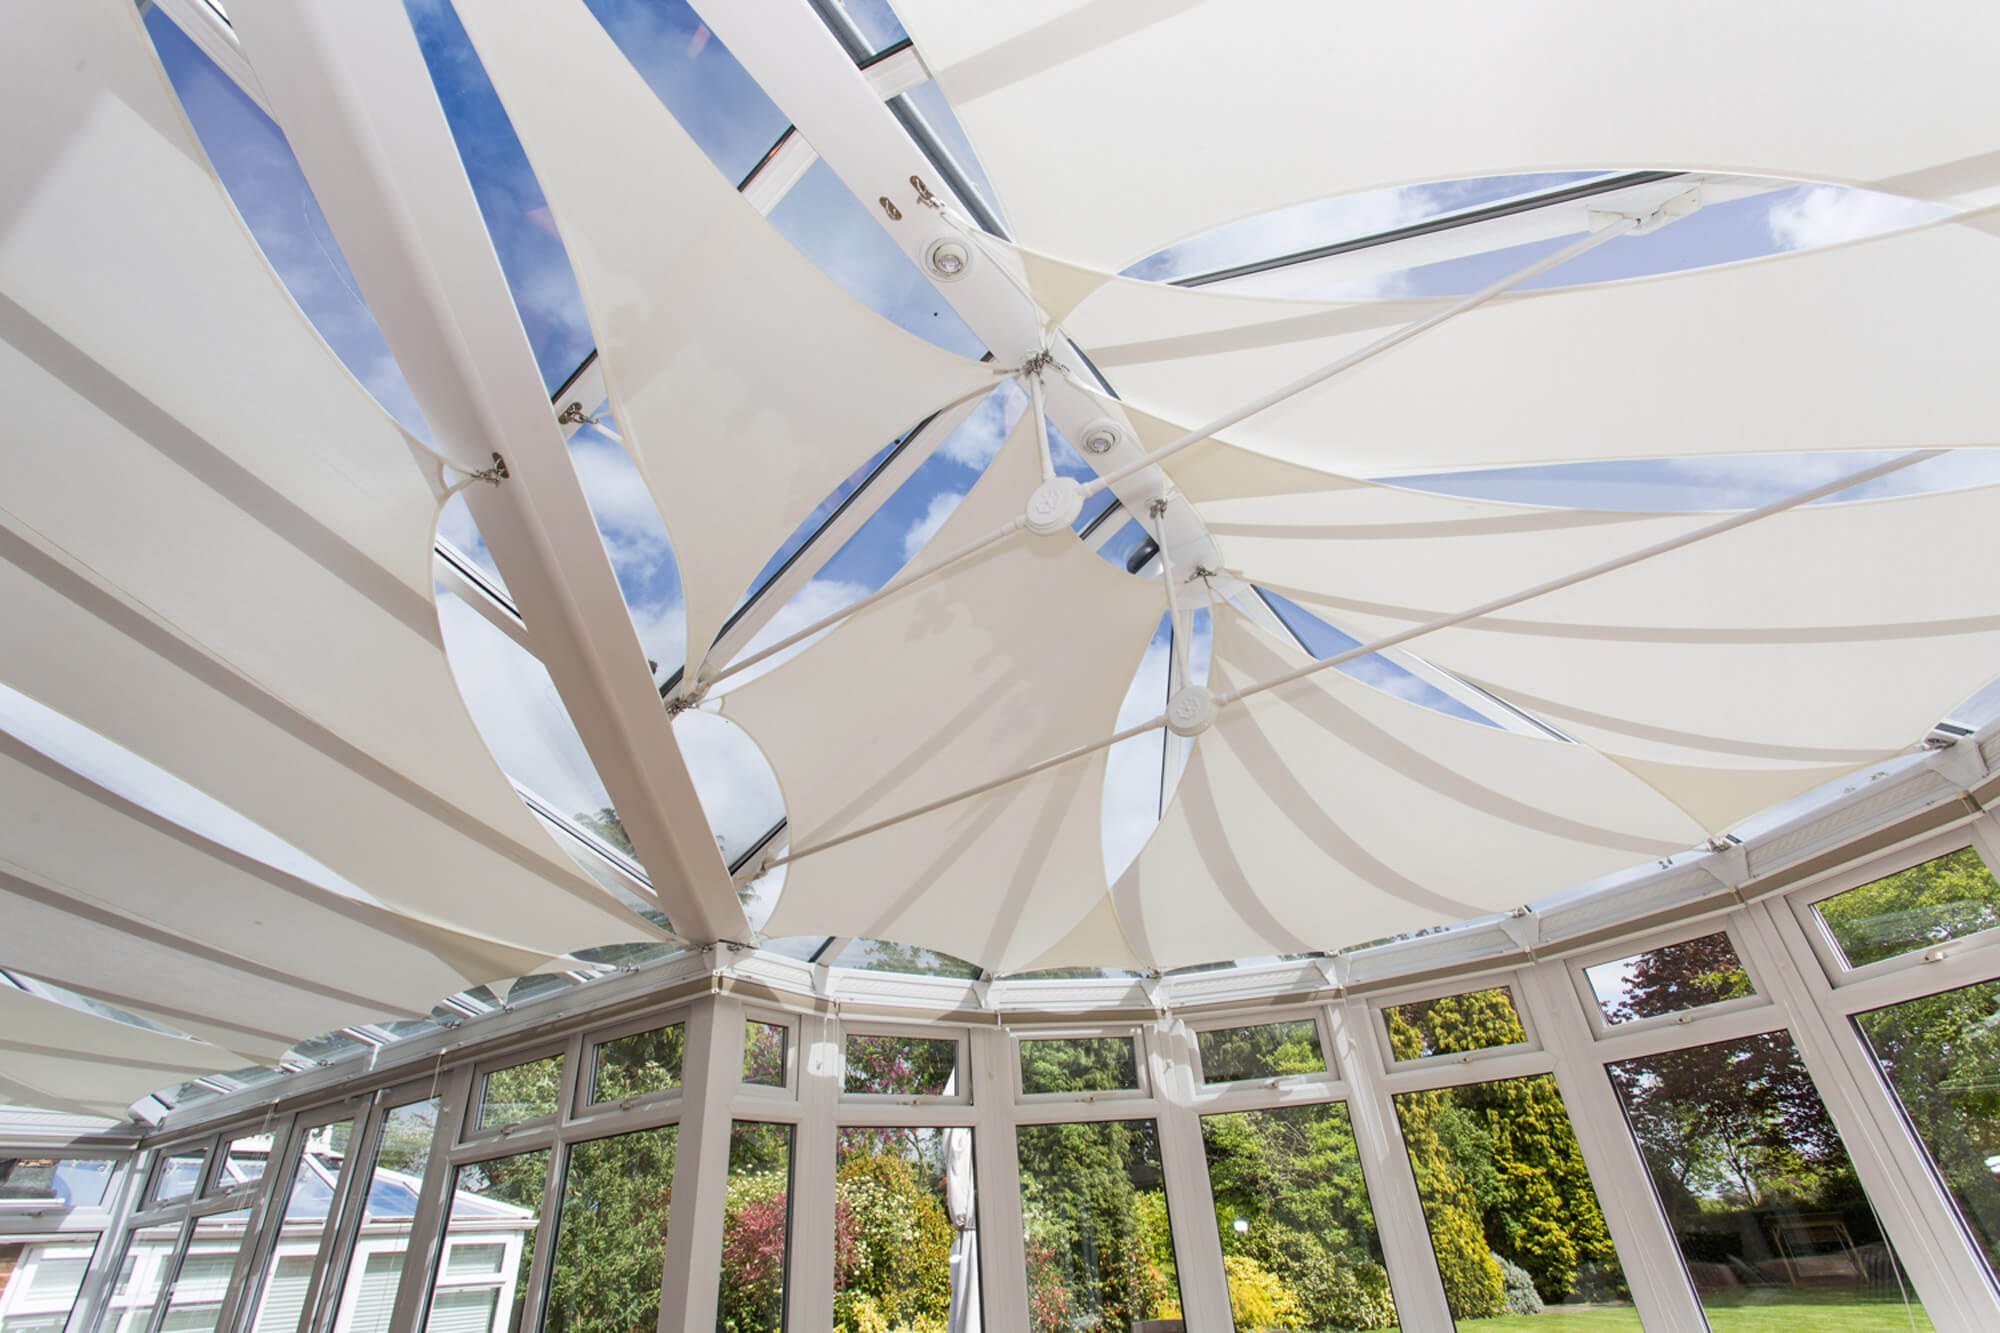 A simple and effective modern alternative to pleated roof blinds